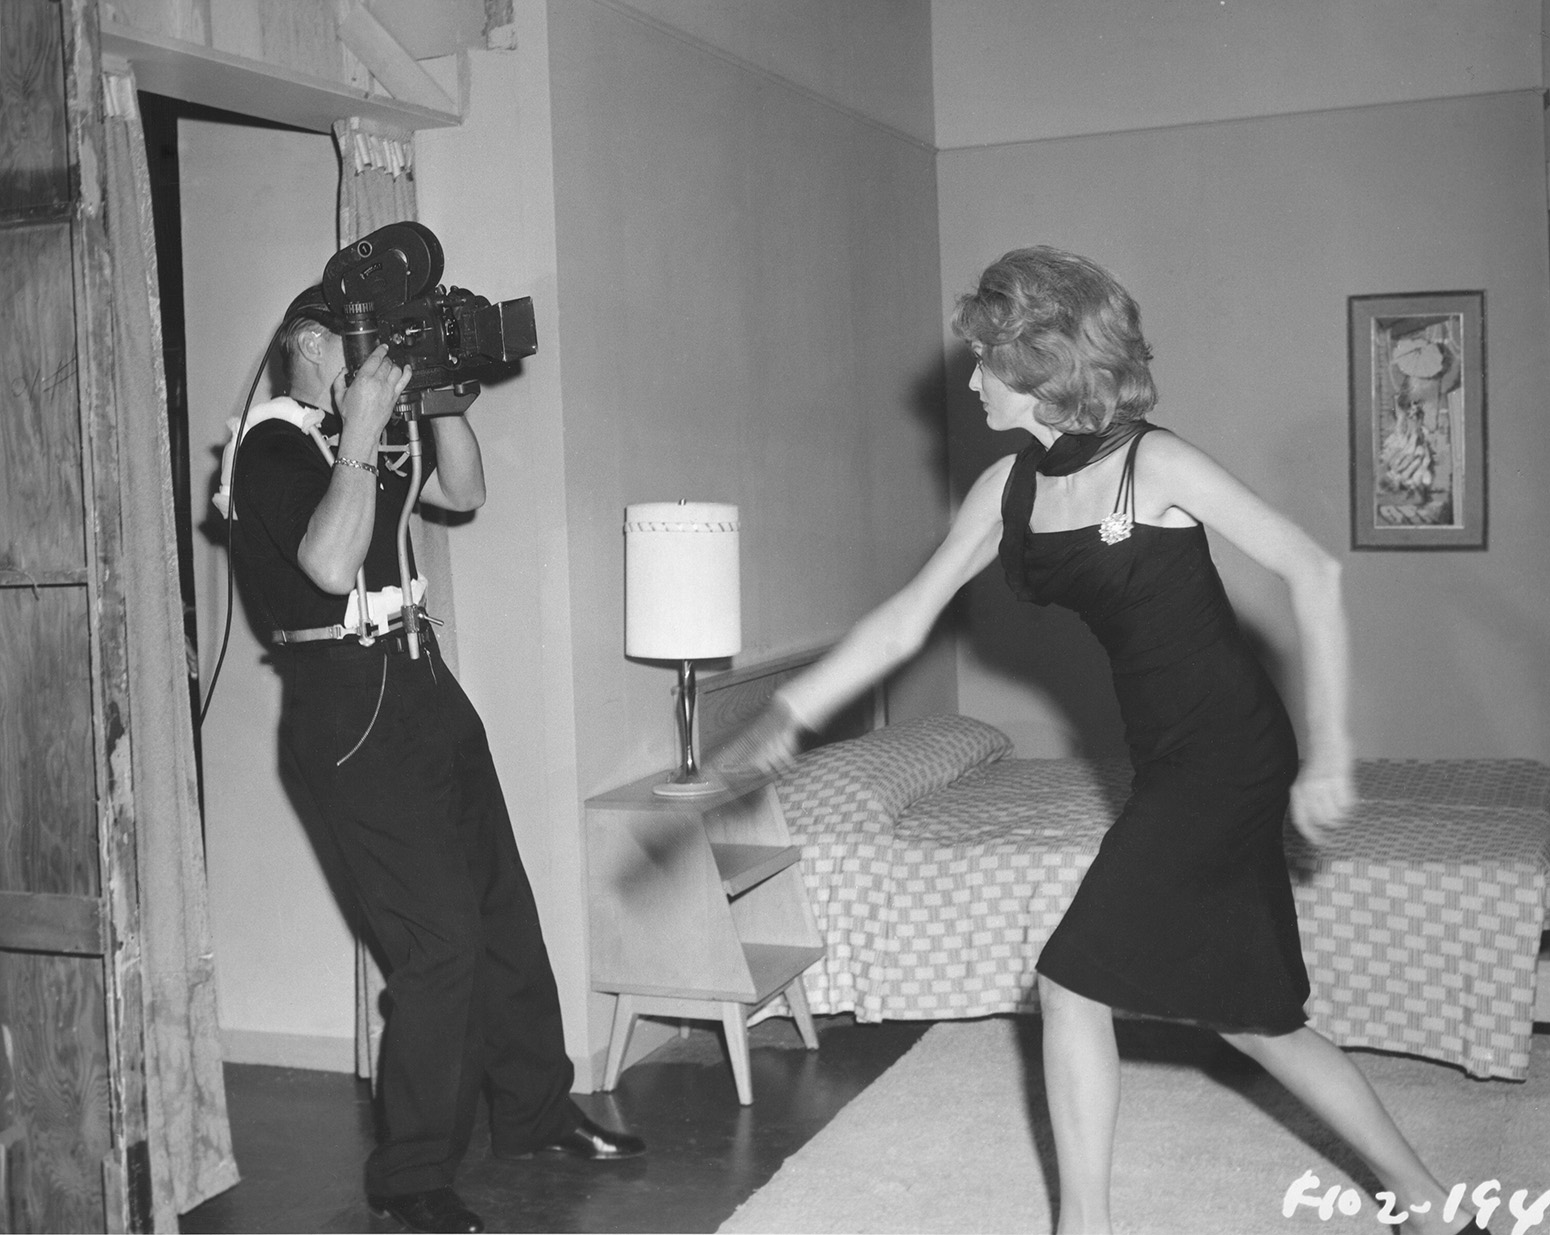 Filming actress Constance Towers for The Naked Kiss (1964). (Credit: Margaret Herrick Library)